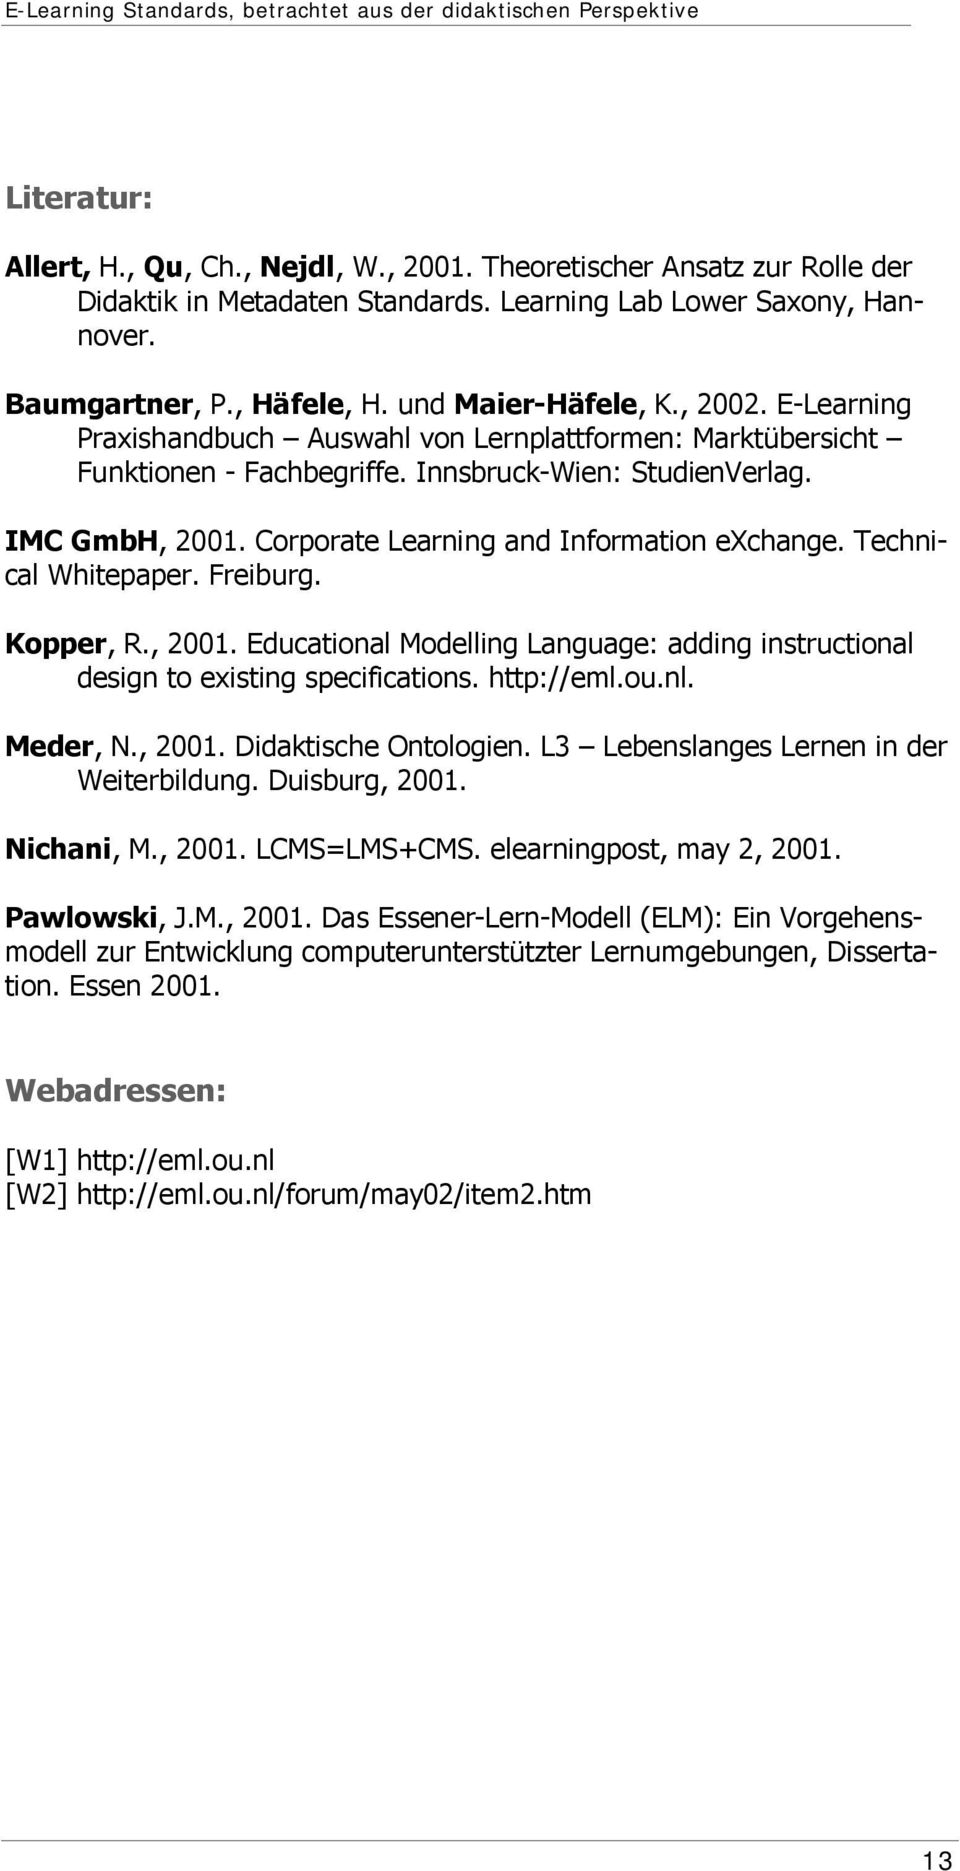 Corporate Learning and Information exchange. Technical Whitepaper. Freiburg. Kopper, R., 2001. Educational Modelling Language: adding instructional design to existing specifications. http://eml.ou.nl.